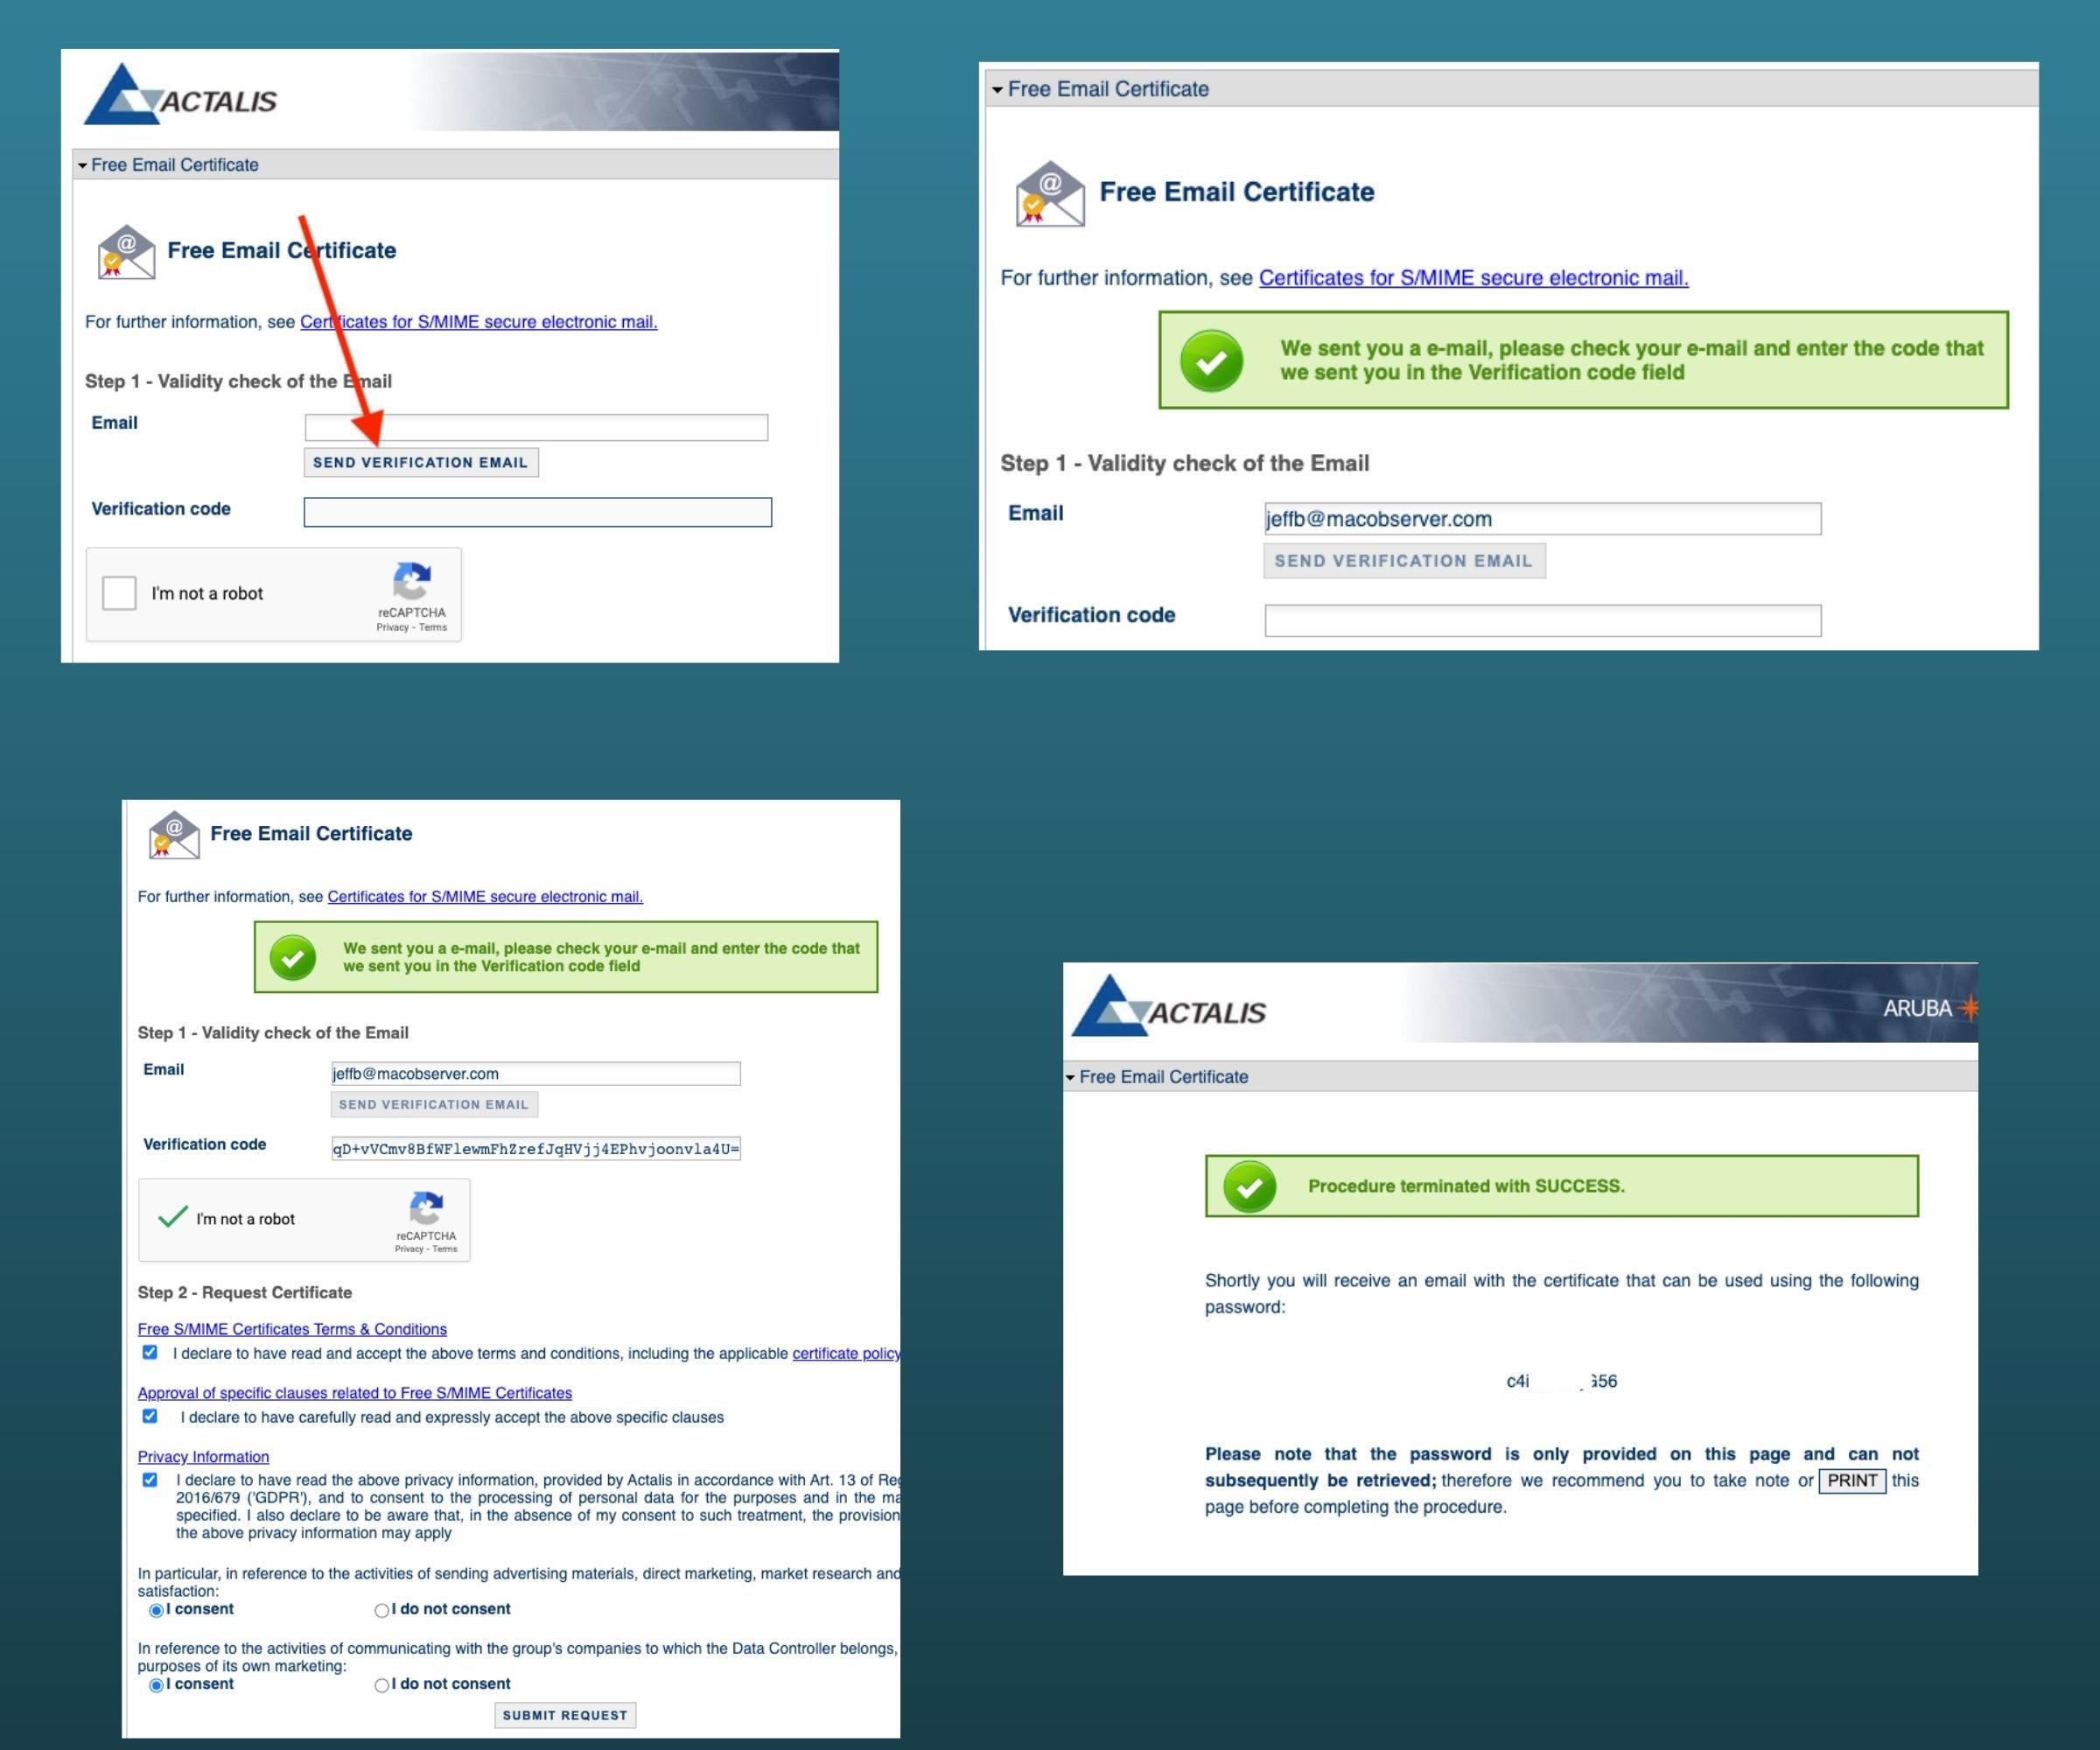 Actalis provides a free S/MIME certificate in 4 simple steps